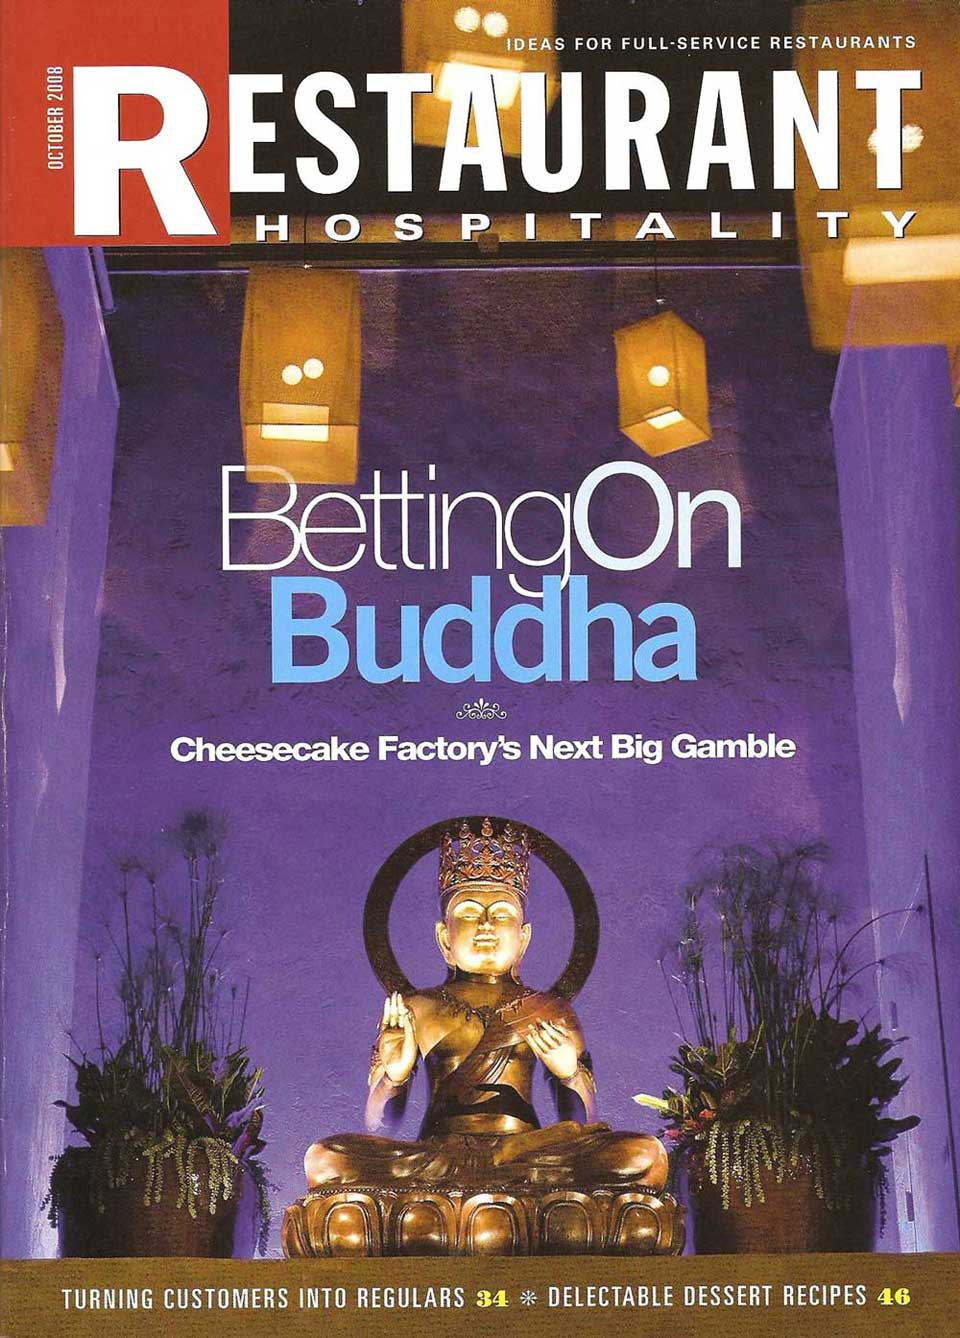 Custom Bodhisattva Statue on the cover October 2008 issue